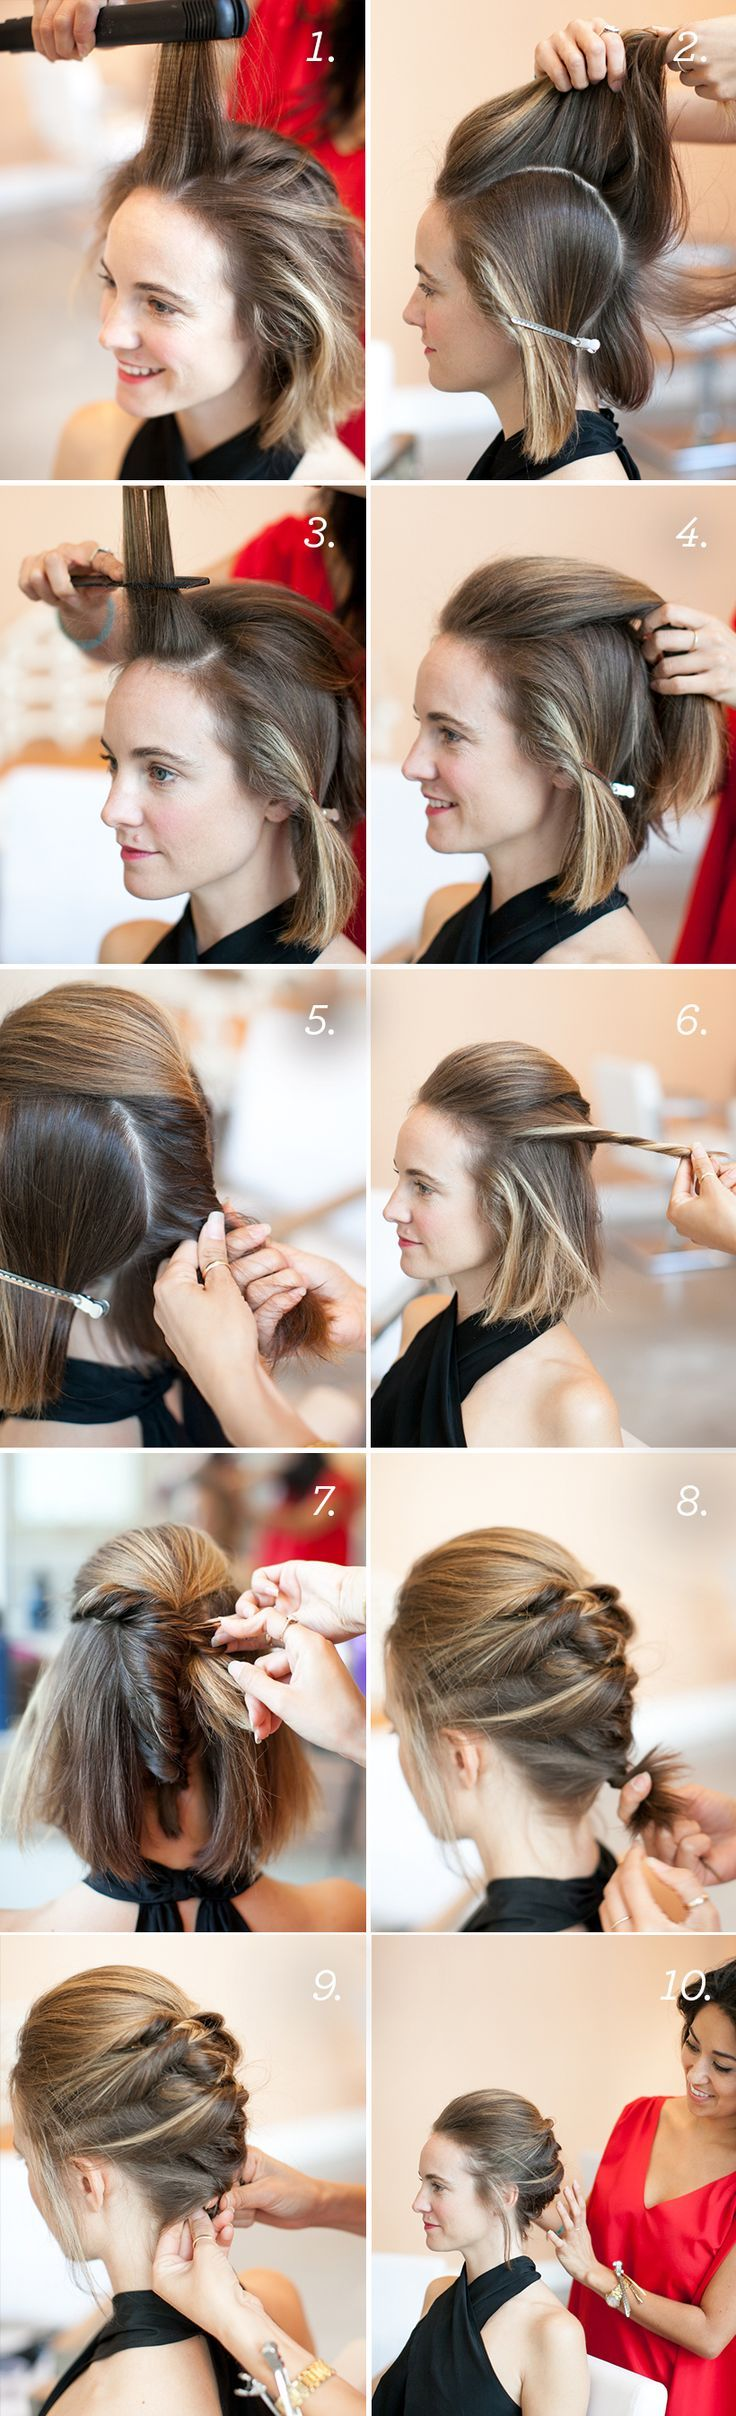 How-To : Textured French Twist Step by Step - Daily New Fashions